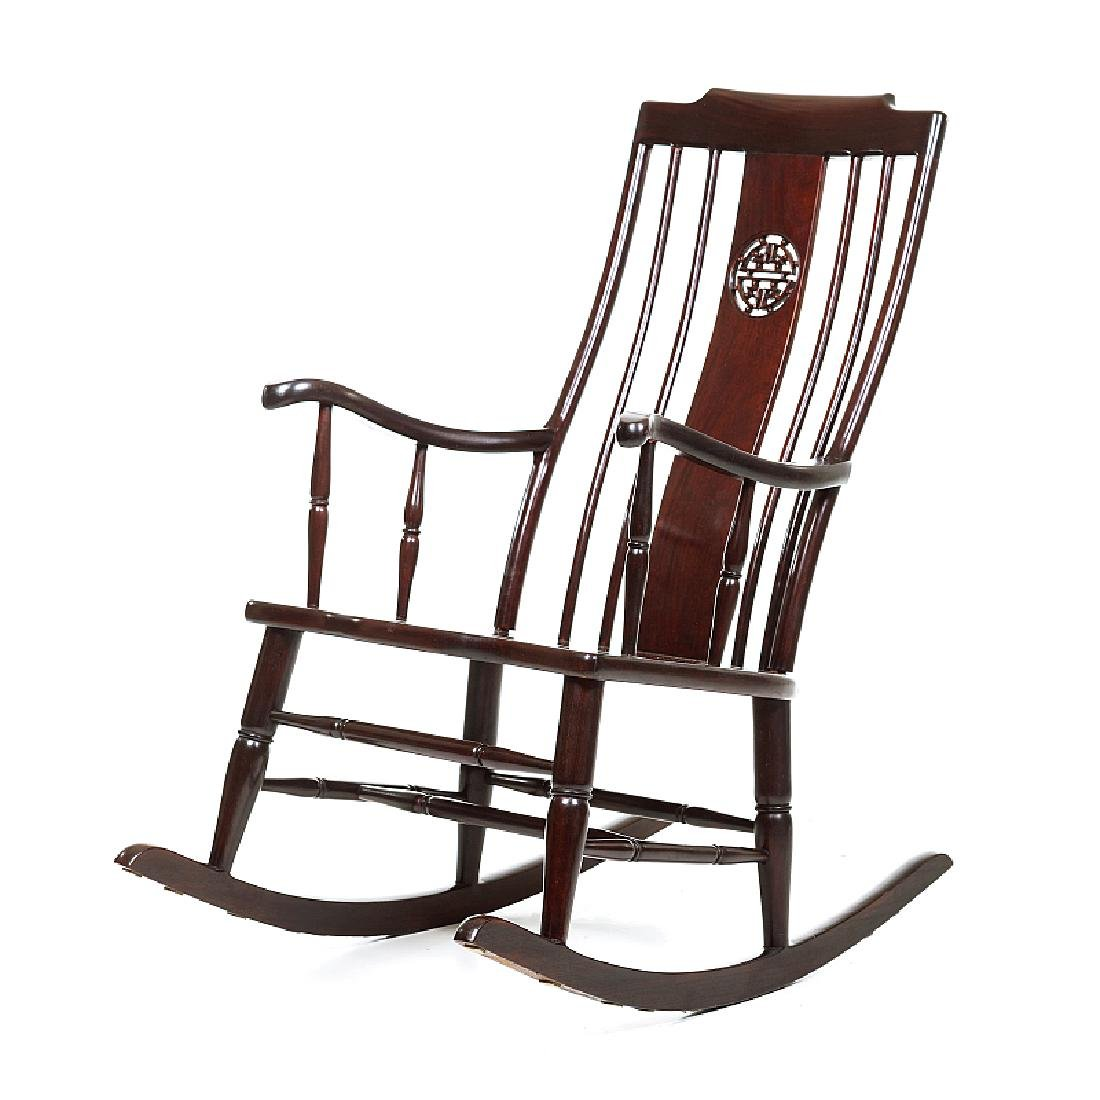 Chinese rocking chair